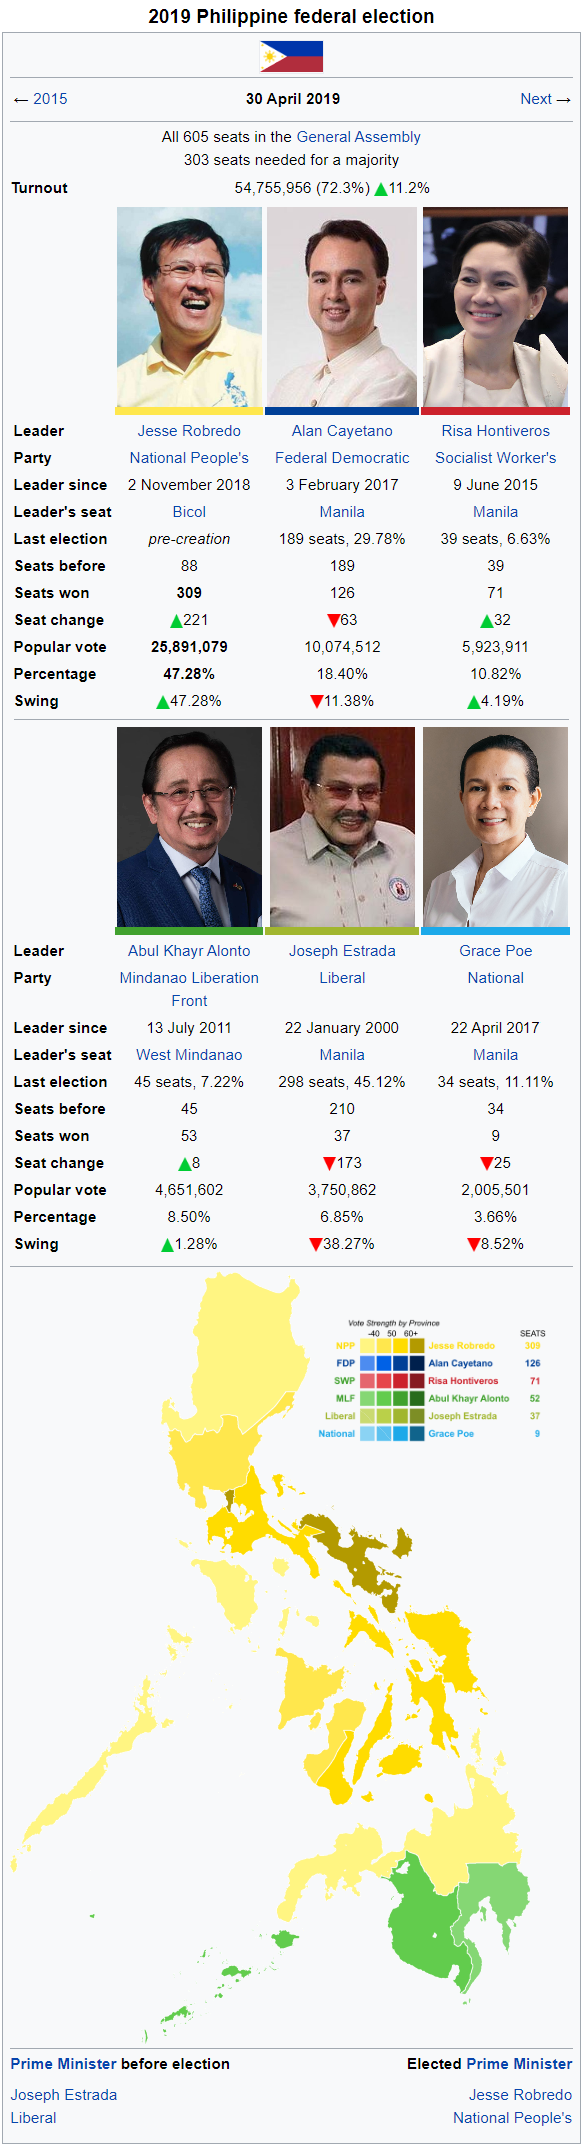 2019 Election Wiki 2.png